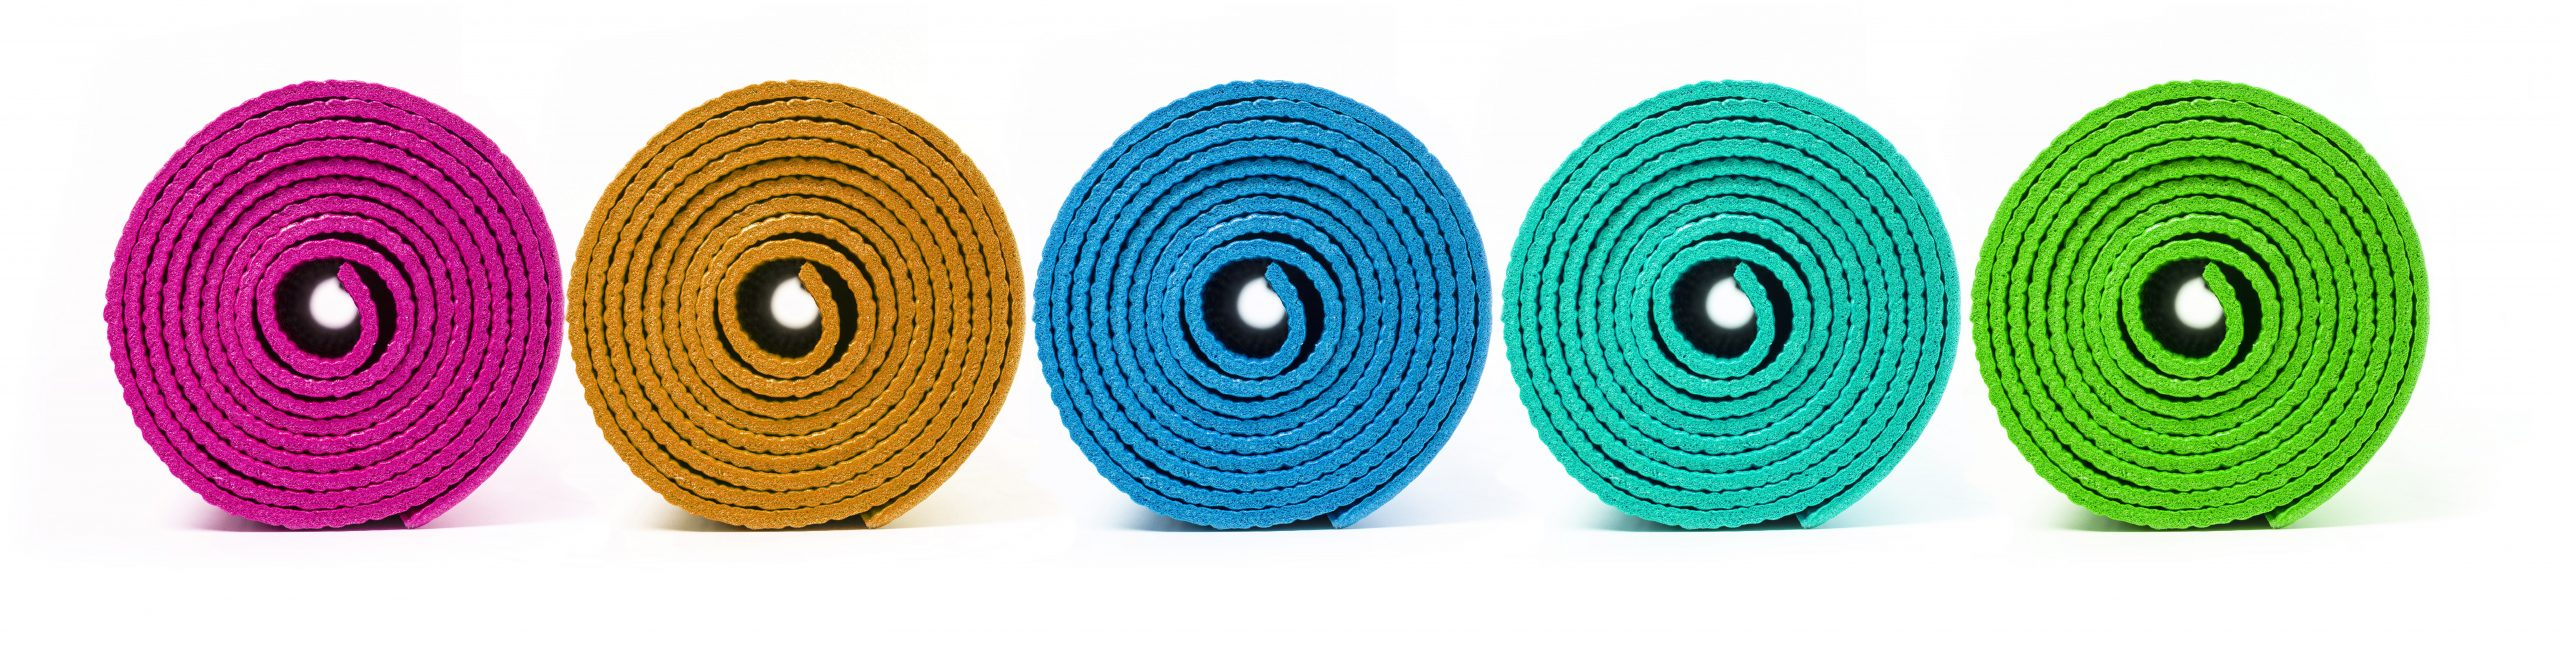 A row of rolled up yoga mats